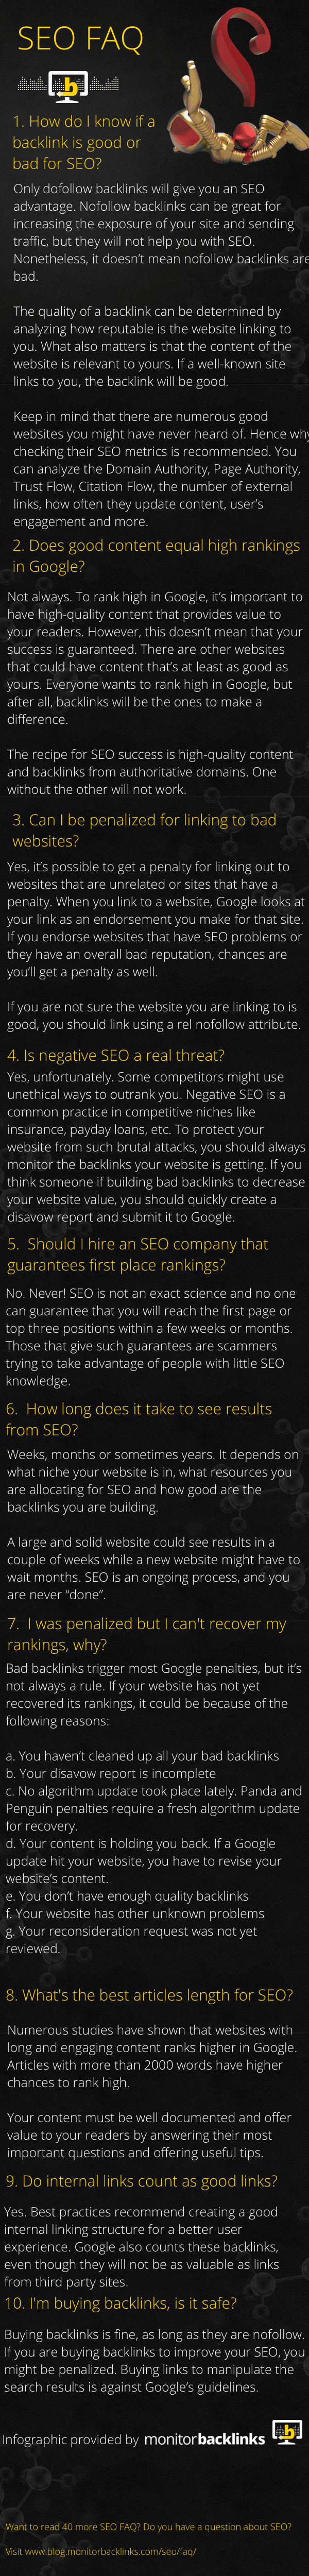 infographic-SEO-FAQ